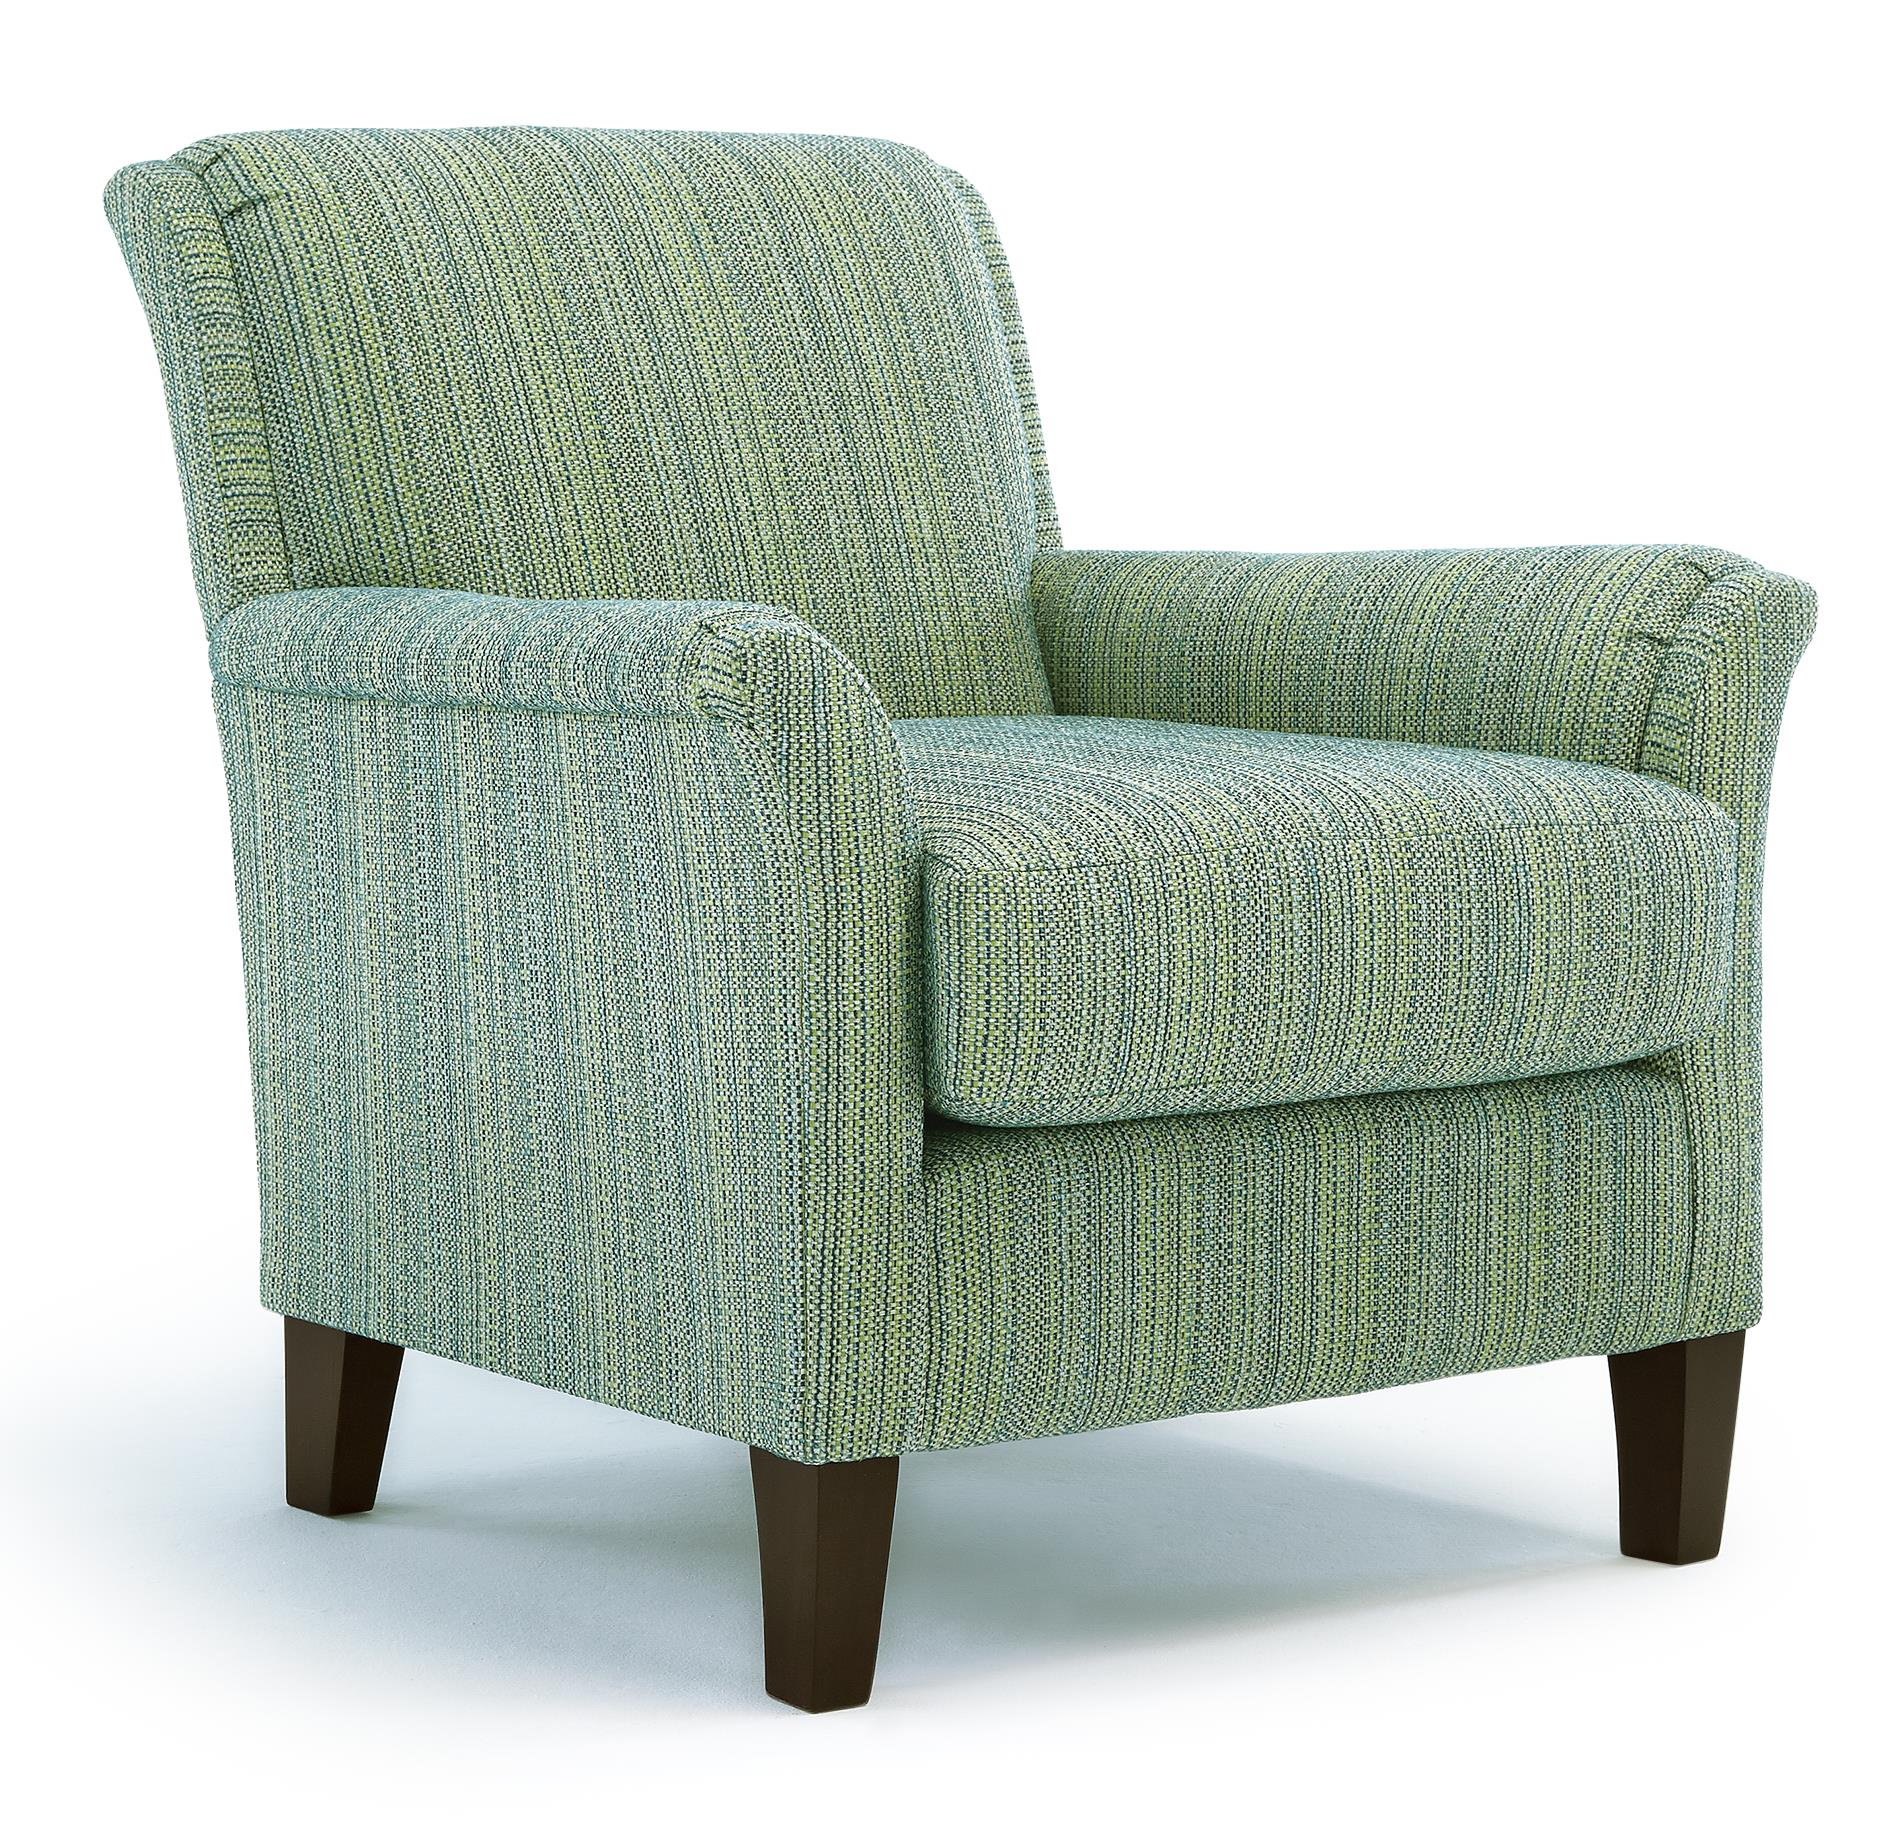 Best Home Furnishings Chairs - Club Carson Club Chair - Item Number: 2010-23051